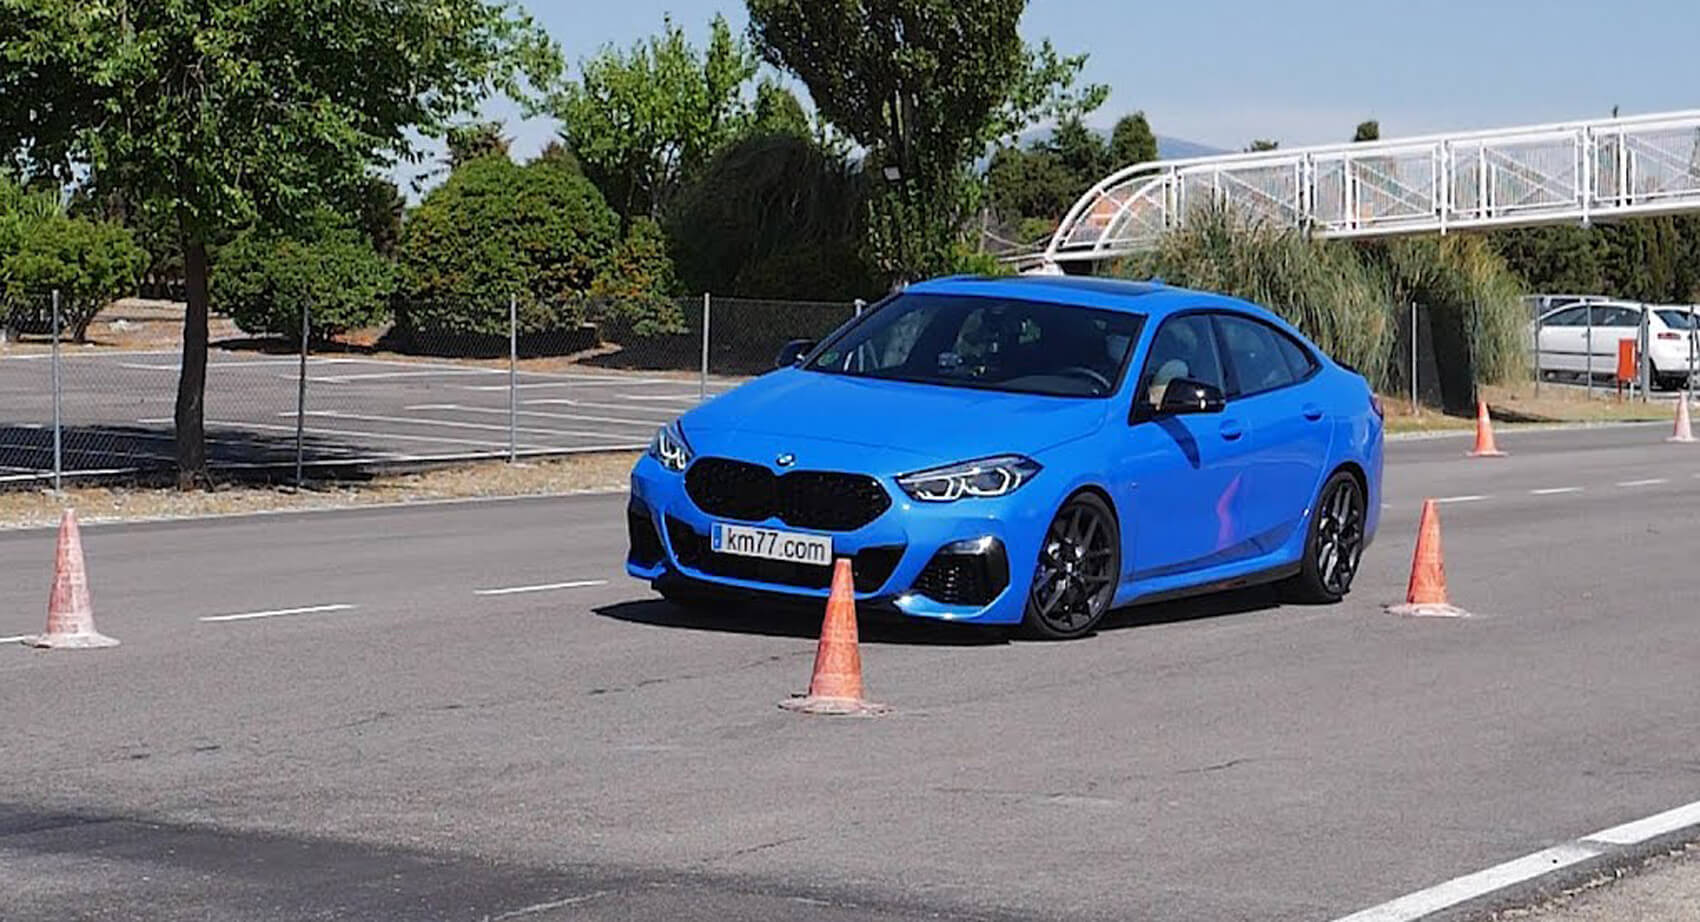 """A team of Spanish reporters has set up a so-called """"moose test"""" for the BMW M235i (F44) performance sedan. The goal was to determine how well the car would manage to stay in control after an abrupt speed maneuver. It did not."""